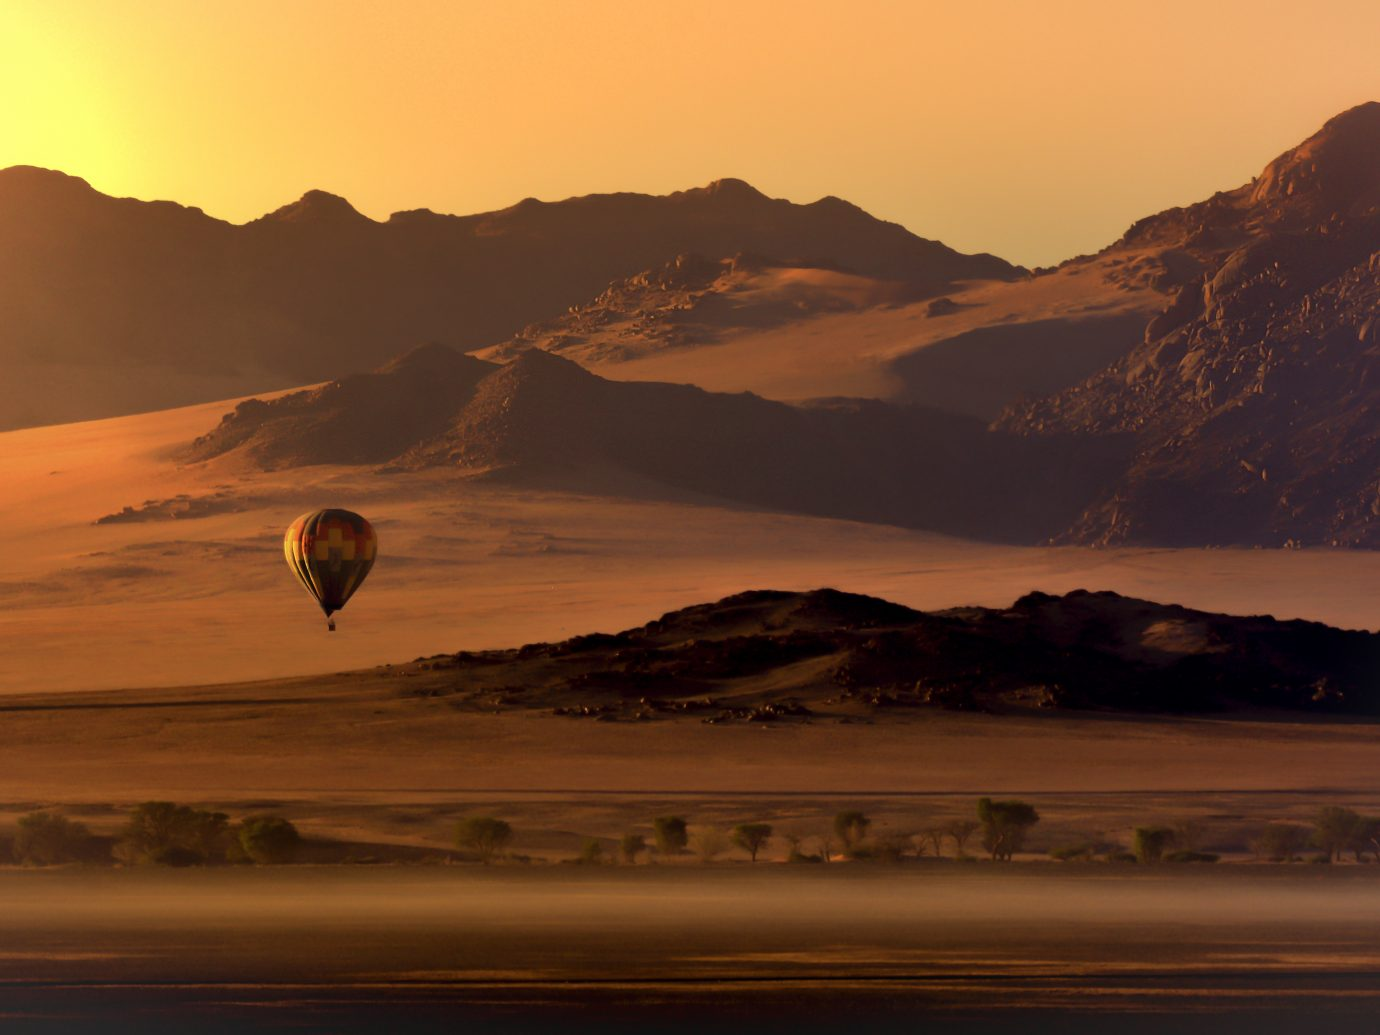 Desert Ballooning over the Sossusvlei Desert